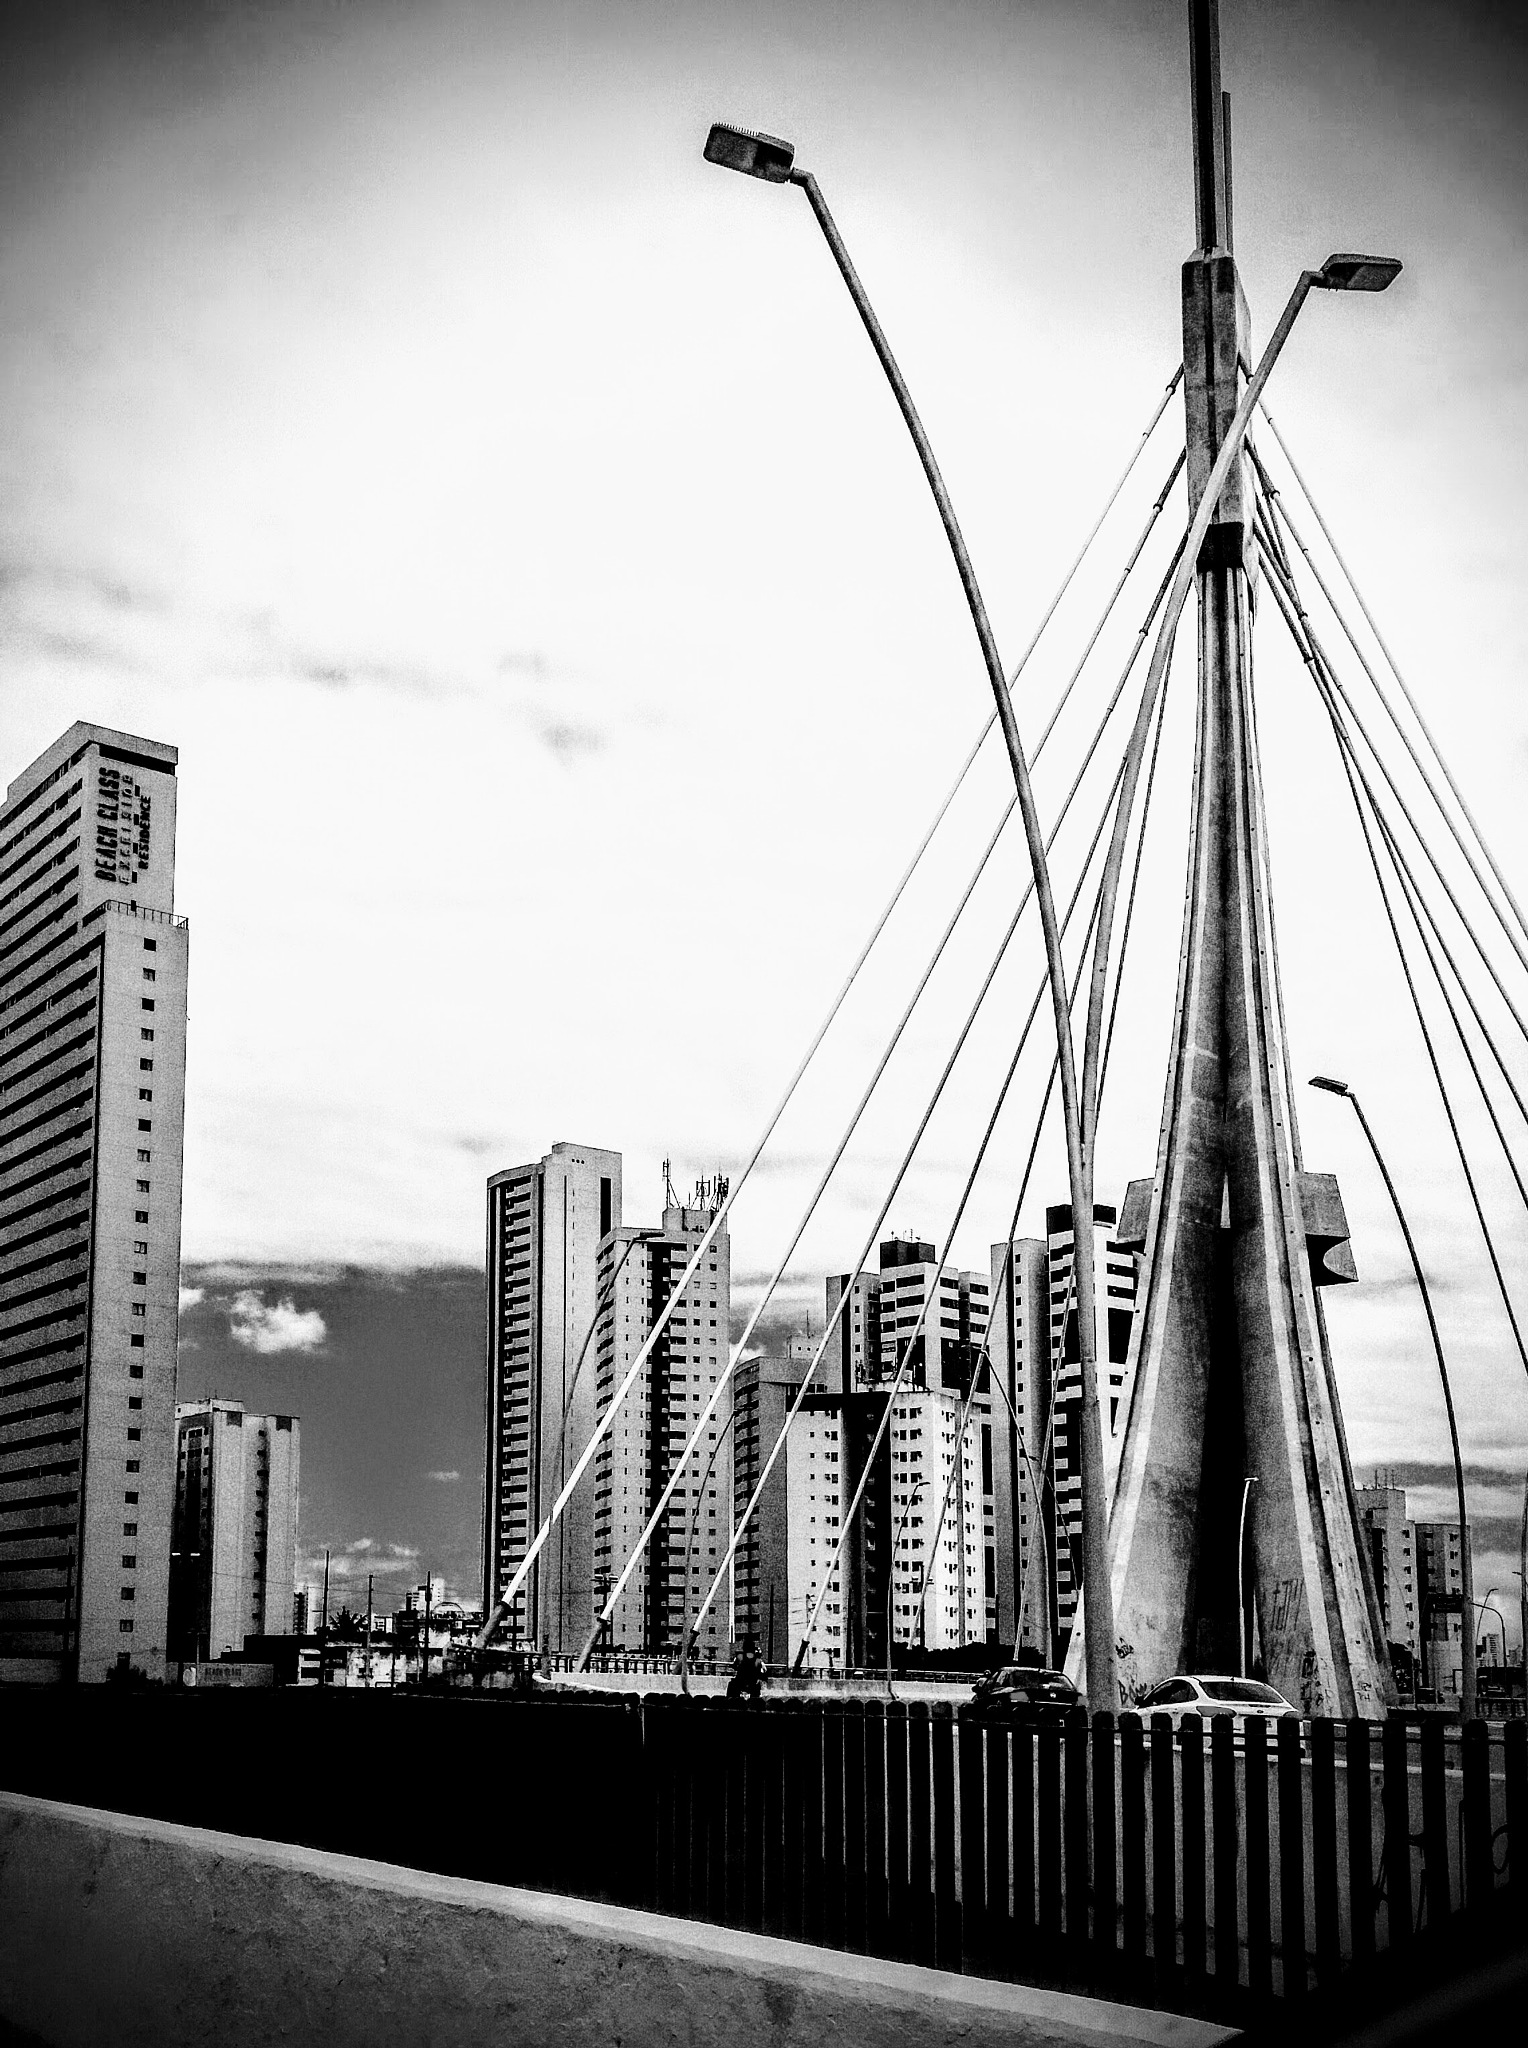 Recife is beautiful even in black and white by Sonja